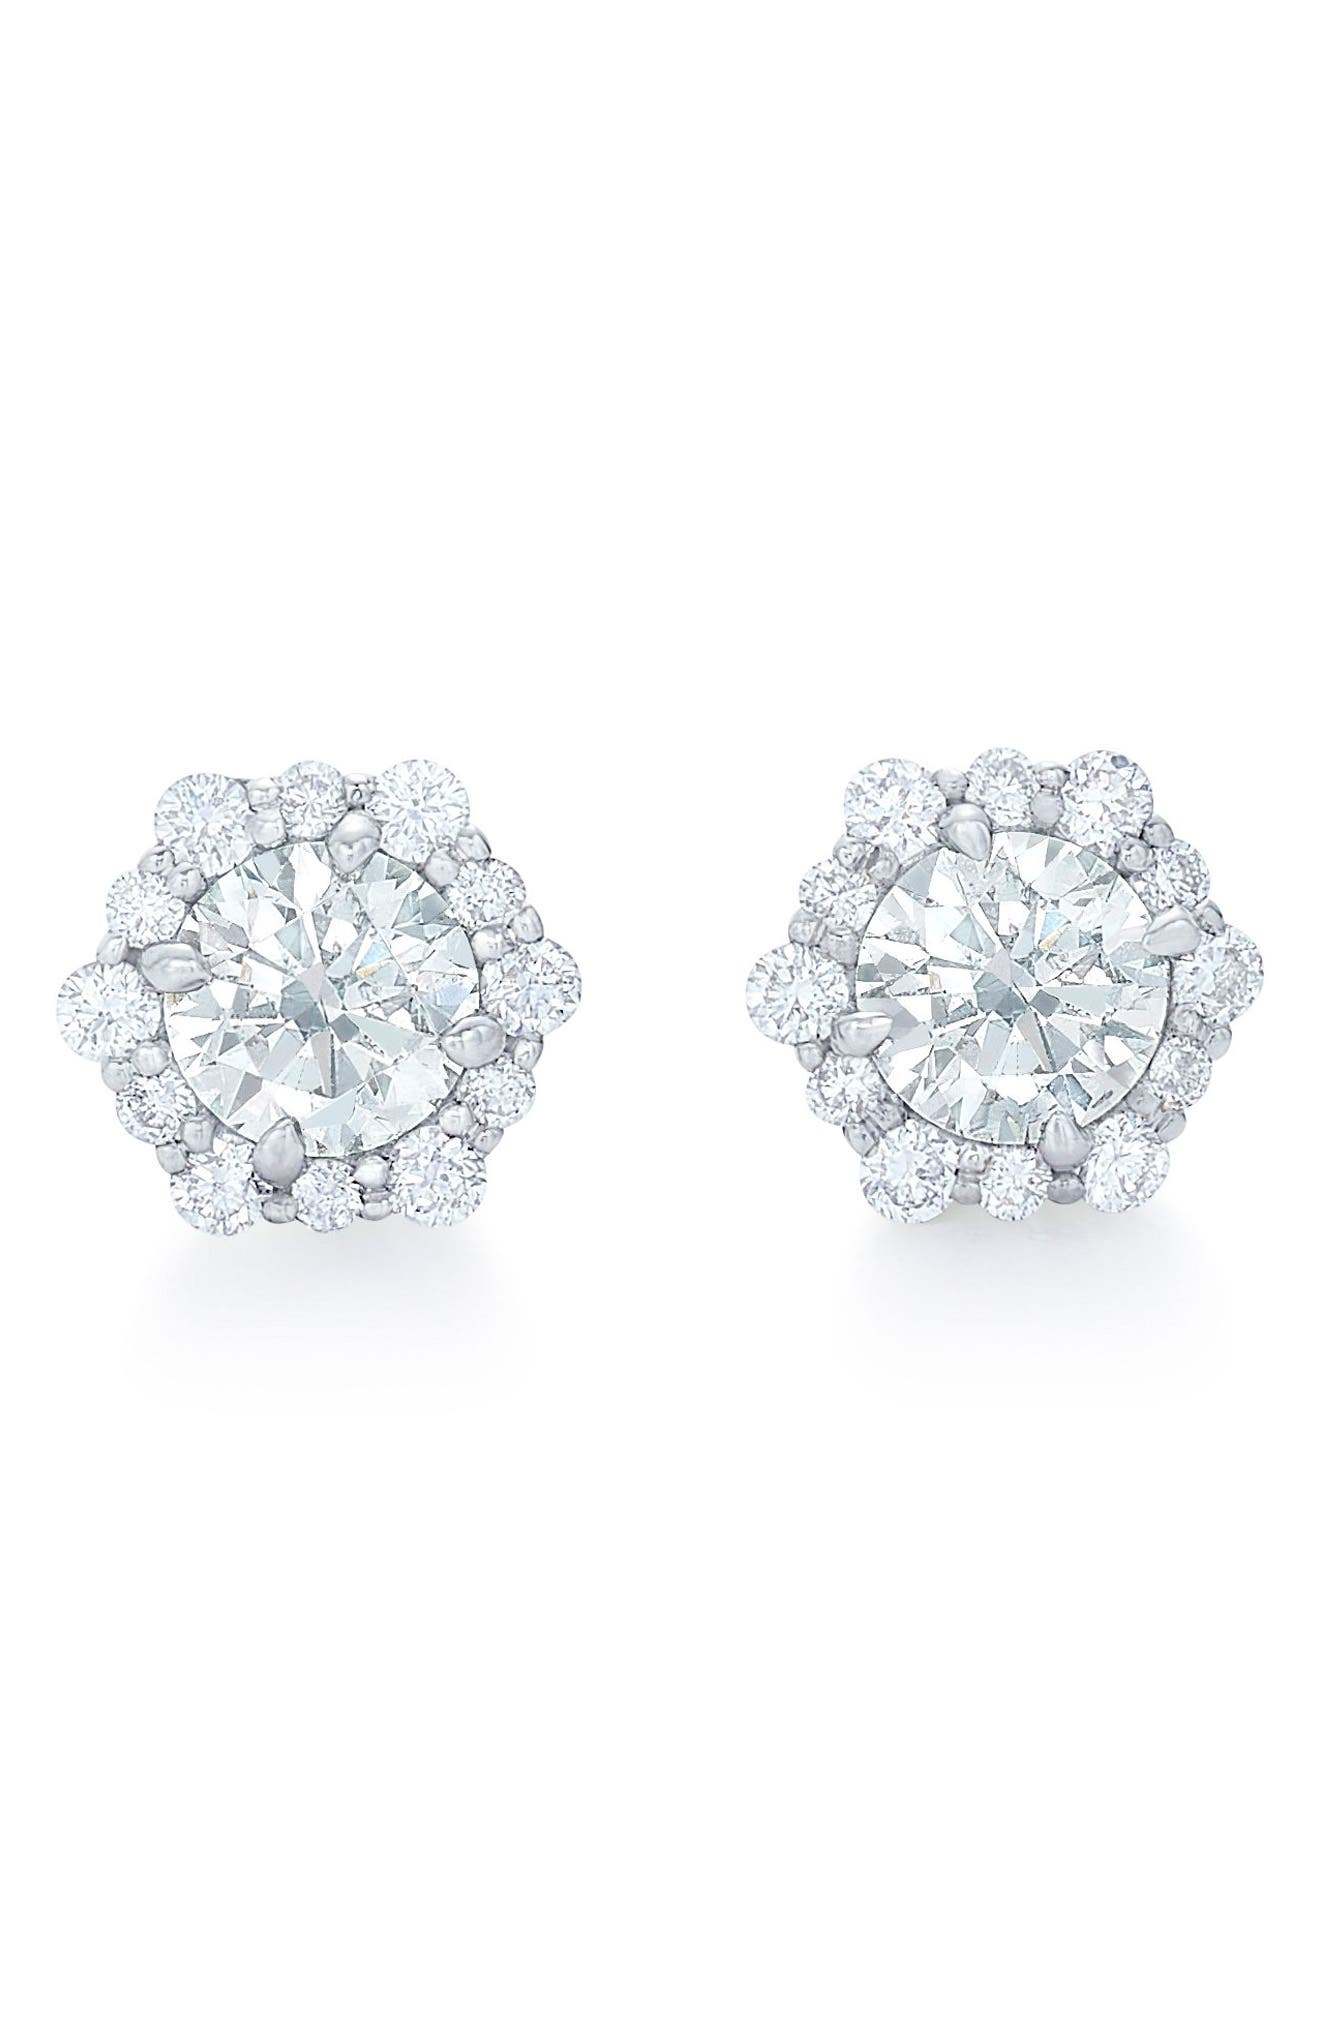 Diamond Halo Stud Earrings,                         Main,                         color, White Gold